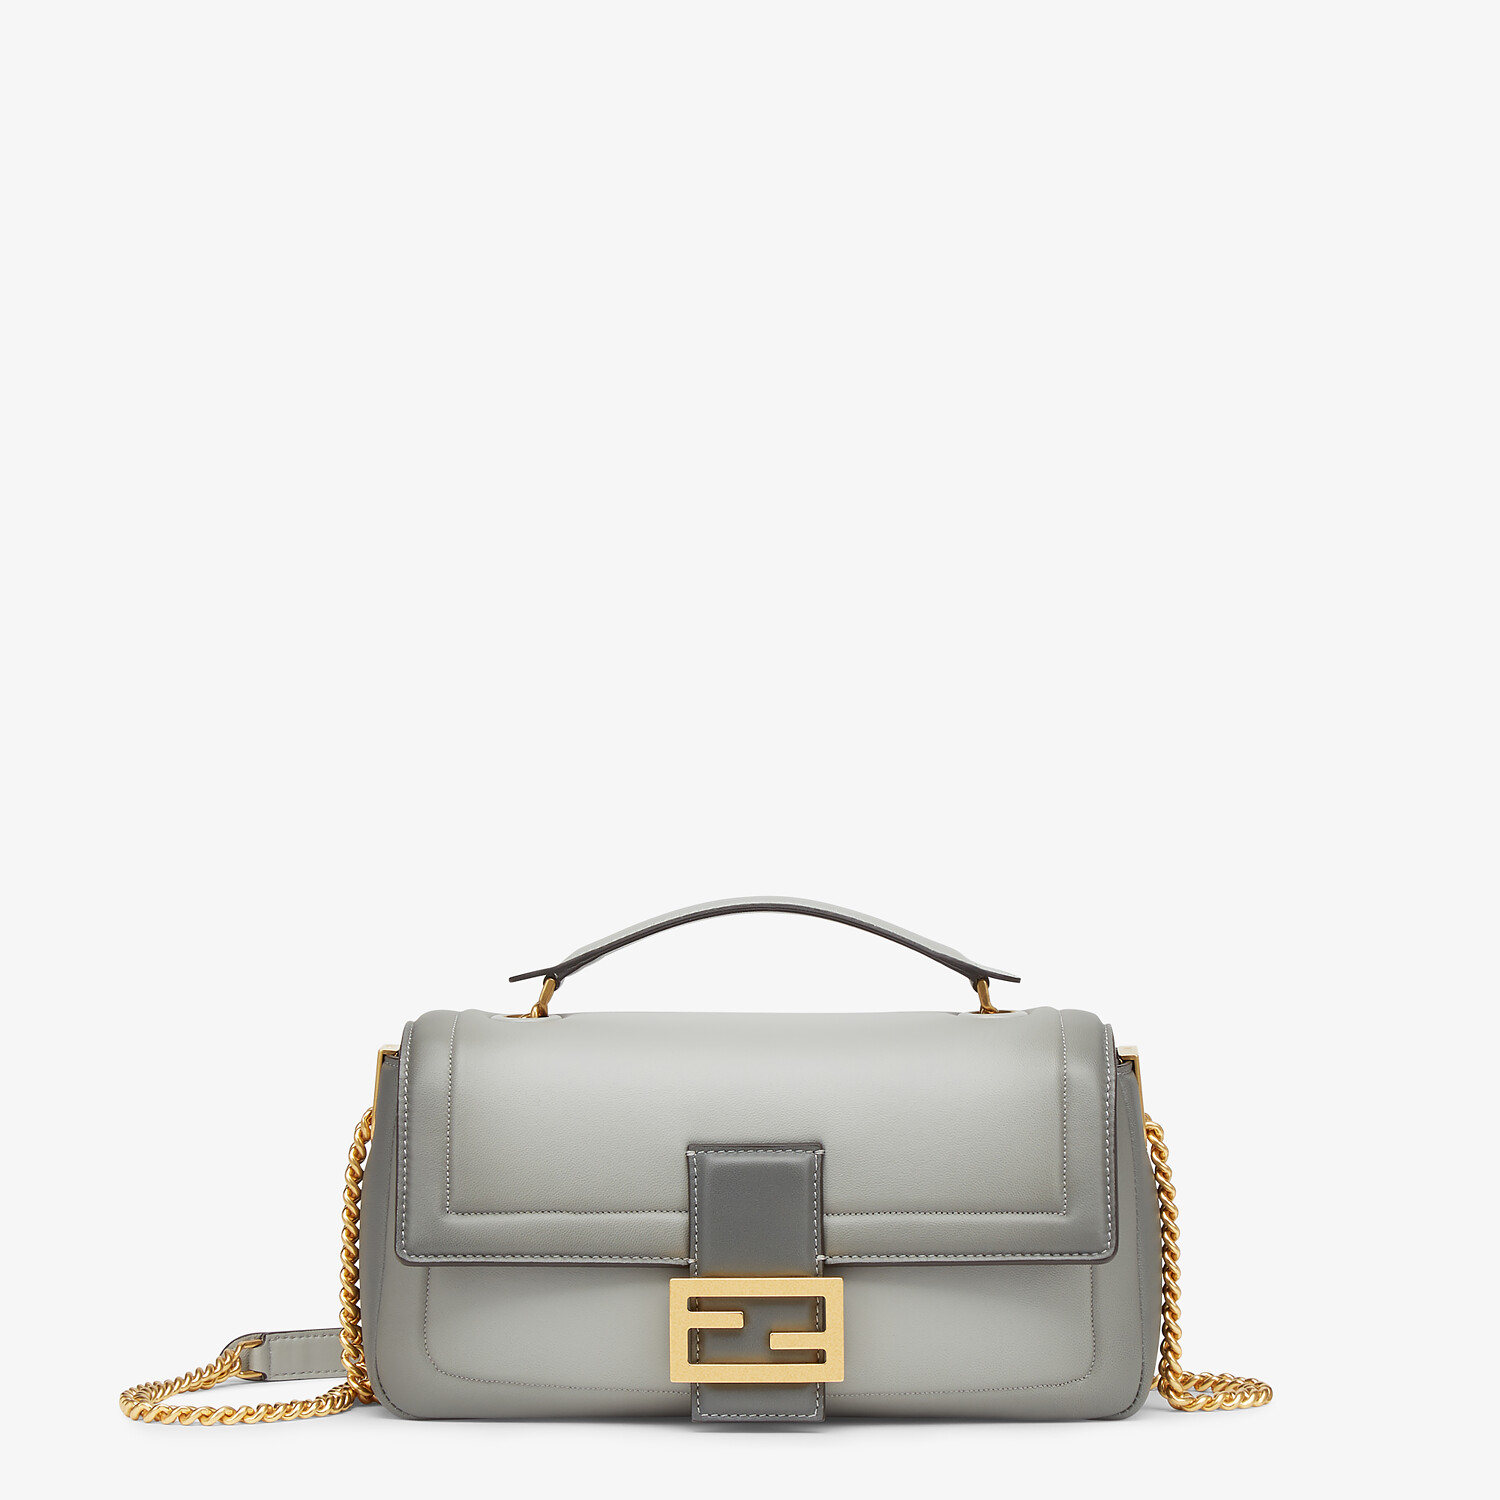 FENDI BAGUETTE CHAIN - gray nappa leather bag - view 1 detail